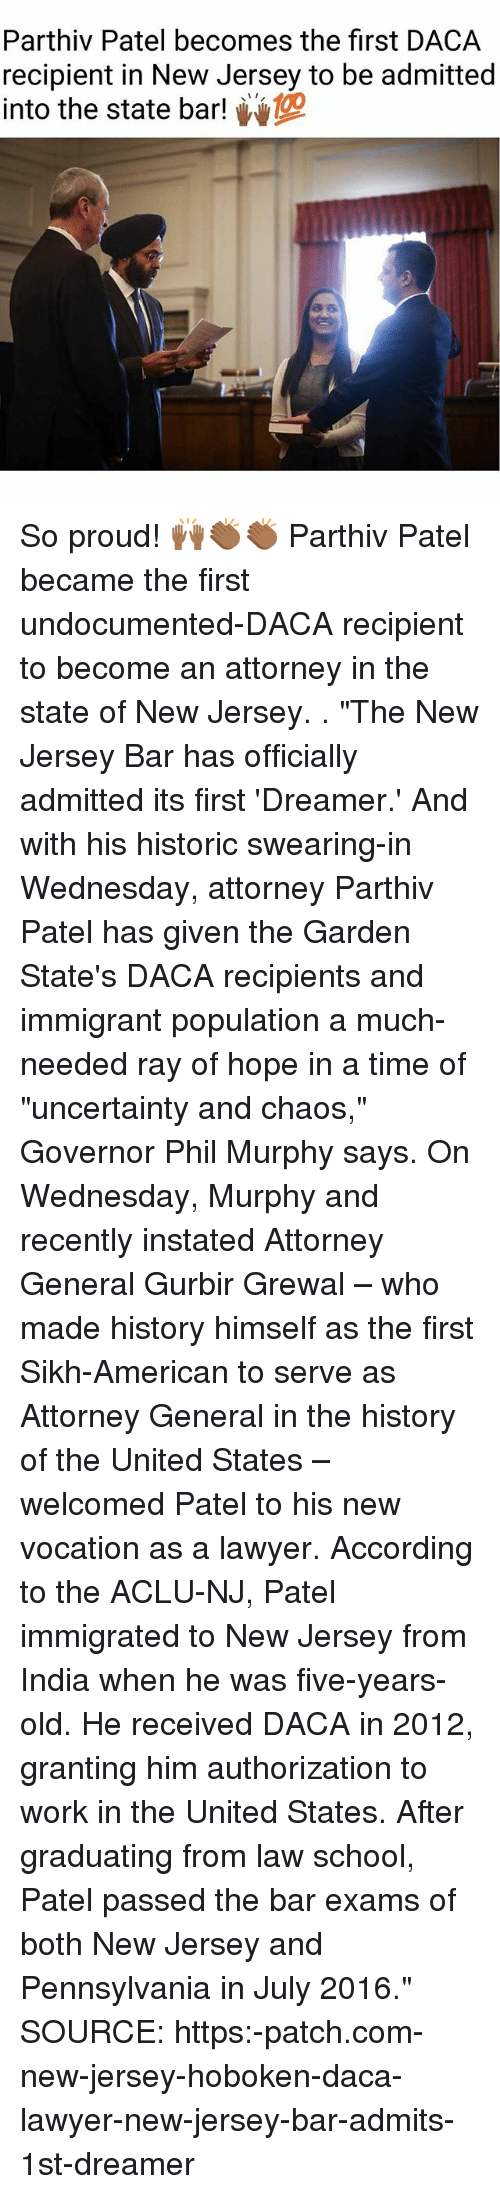 "Aclu: Parthiv Patel becomes the first DACA  recipient in New Jersey to be admitted  into the state bar! So proud! 🙌🏾👏🏾👏🏾 Parthiv Patel became the first undocumented-DACA recipient to become an attorney in the state of New Jersey. . ""The New Jersey Bar has officially admitted its first 'Dreamer.' And with his historic swearing-in Wednesday, attorney Parthiv Patel has given the Garden State's DACA recipients and immigrant population a much-needed ray of hope in a time of ""uncertainty and chaos,"" Governor Phil Murphy says. On Wednesday, Murphy and recently instated Attorney General Gurbir Grewal – who made history himself as the first Sikh-American to serve as Attorney General in the history of the United States – welcomed Patel to his new vocation as a lawyer. According to the ACLU-NJ, Patel immigrated to New Jersey from India when he was five-years-old. He received DACA in 2012, granting him authorization to work in the United States. After graduating from law school, Patel passed the bar exams of both New Jersey and Pennsylvania in July 2016."" SOURCE: https:-patch.com-new-jersey-hoboken-daca-lawyer-new-jersey-bar-admits-1st-dreamer"